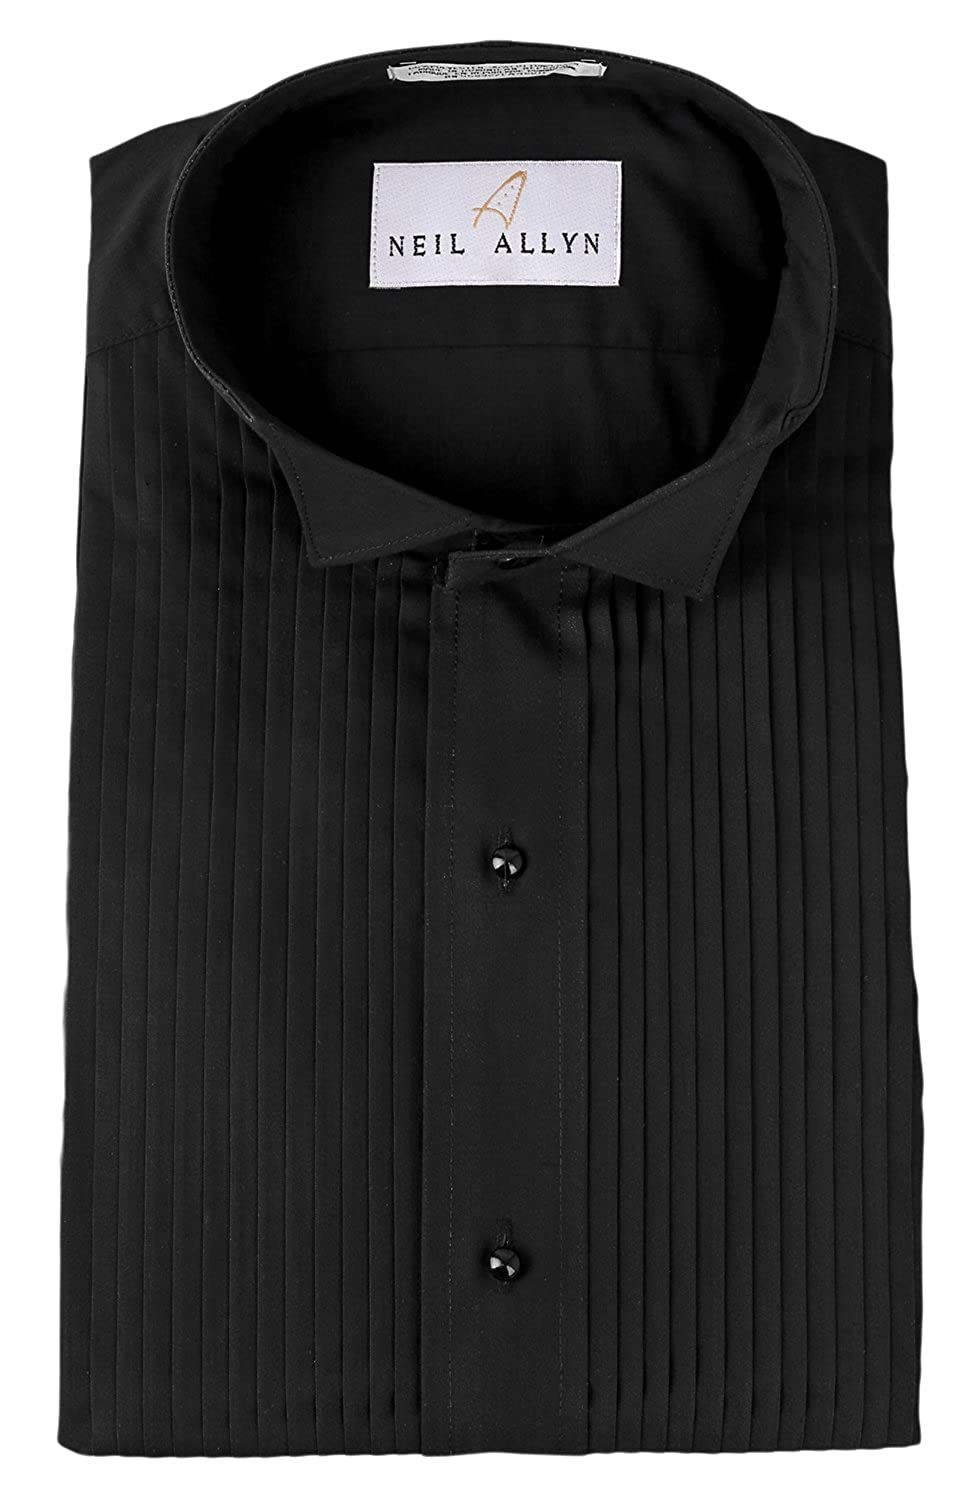 Neil Allyn Men's Black Wing Collar 1/4 Pleats Tuxedo Shirt